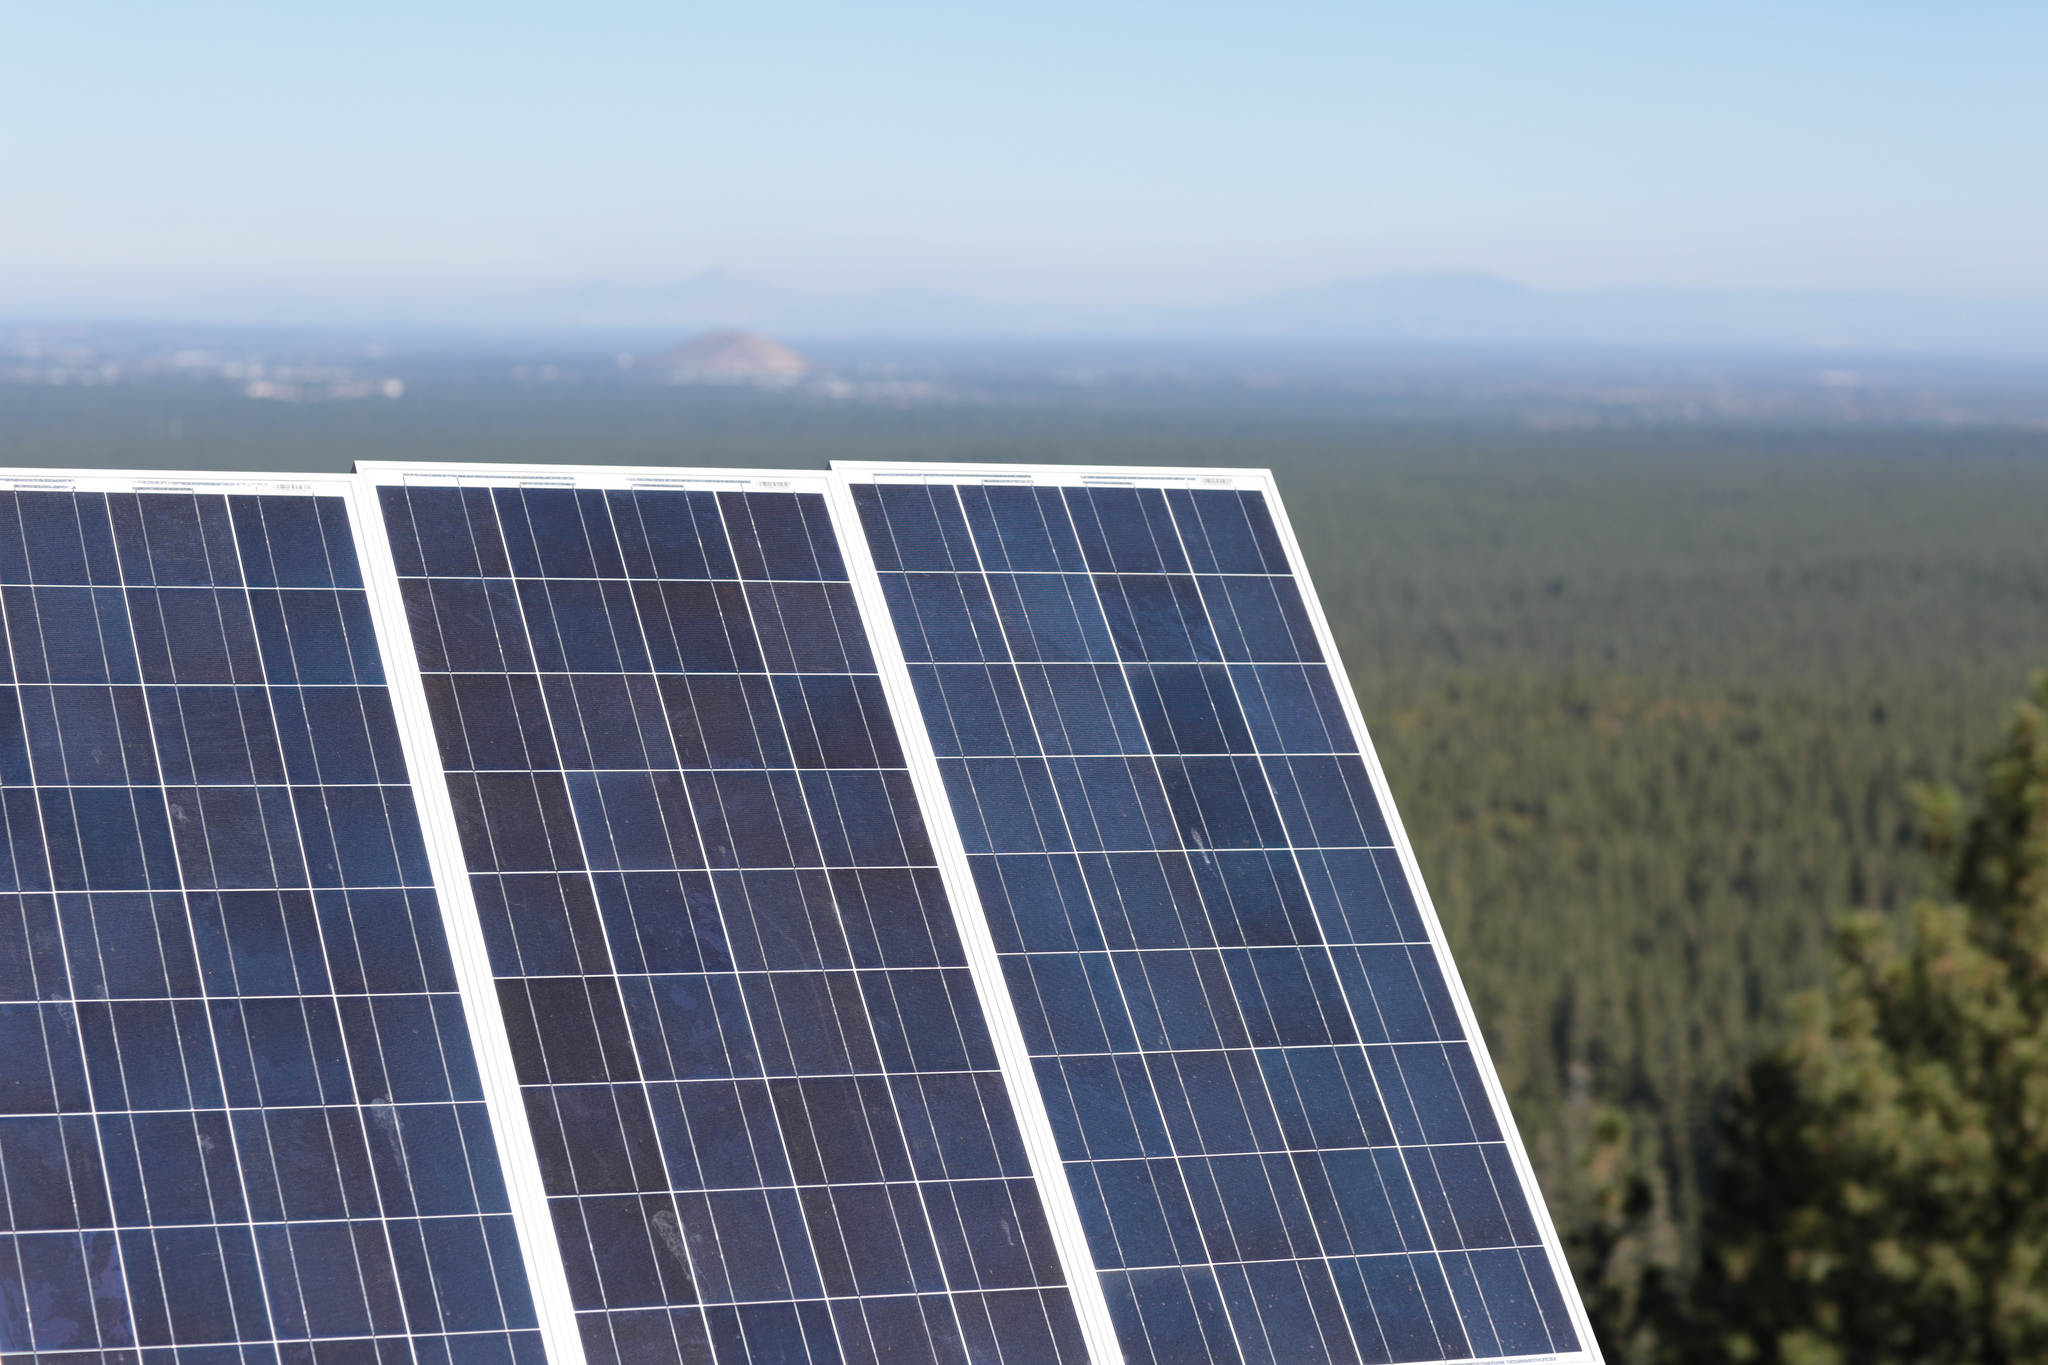 With this funding, Cypress Creek will utilise the proceeds to spur the ongoing development, construction and acquisition of solar assets located throughout the US. Image: Peter Knight / Flickr